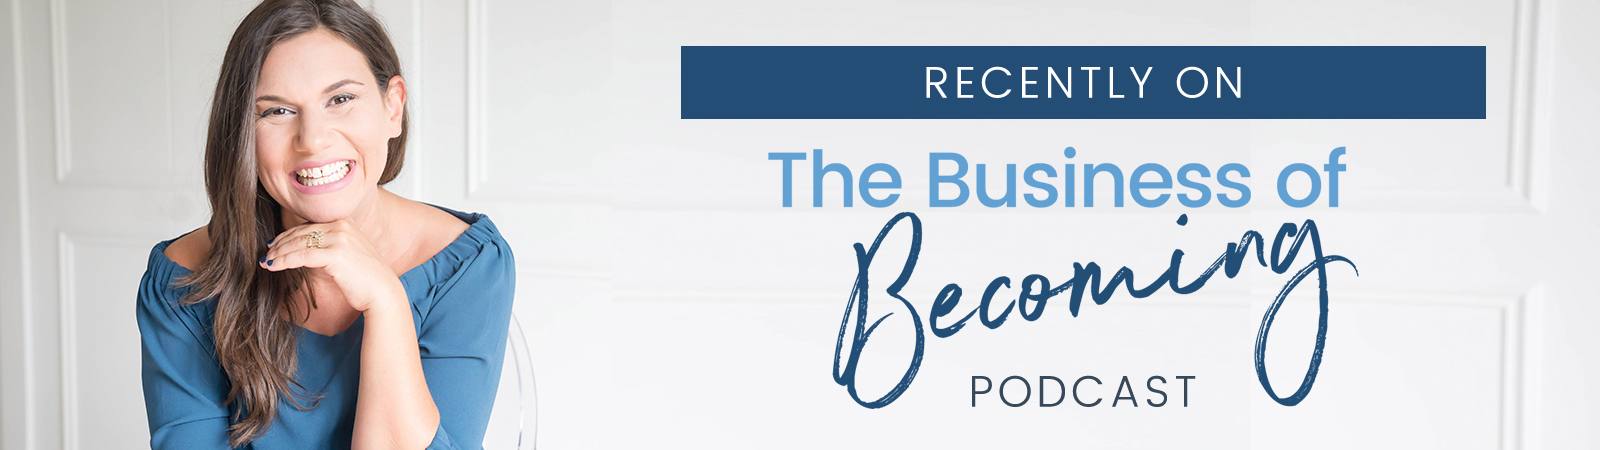 Recently on the Business of Becoming Podcast